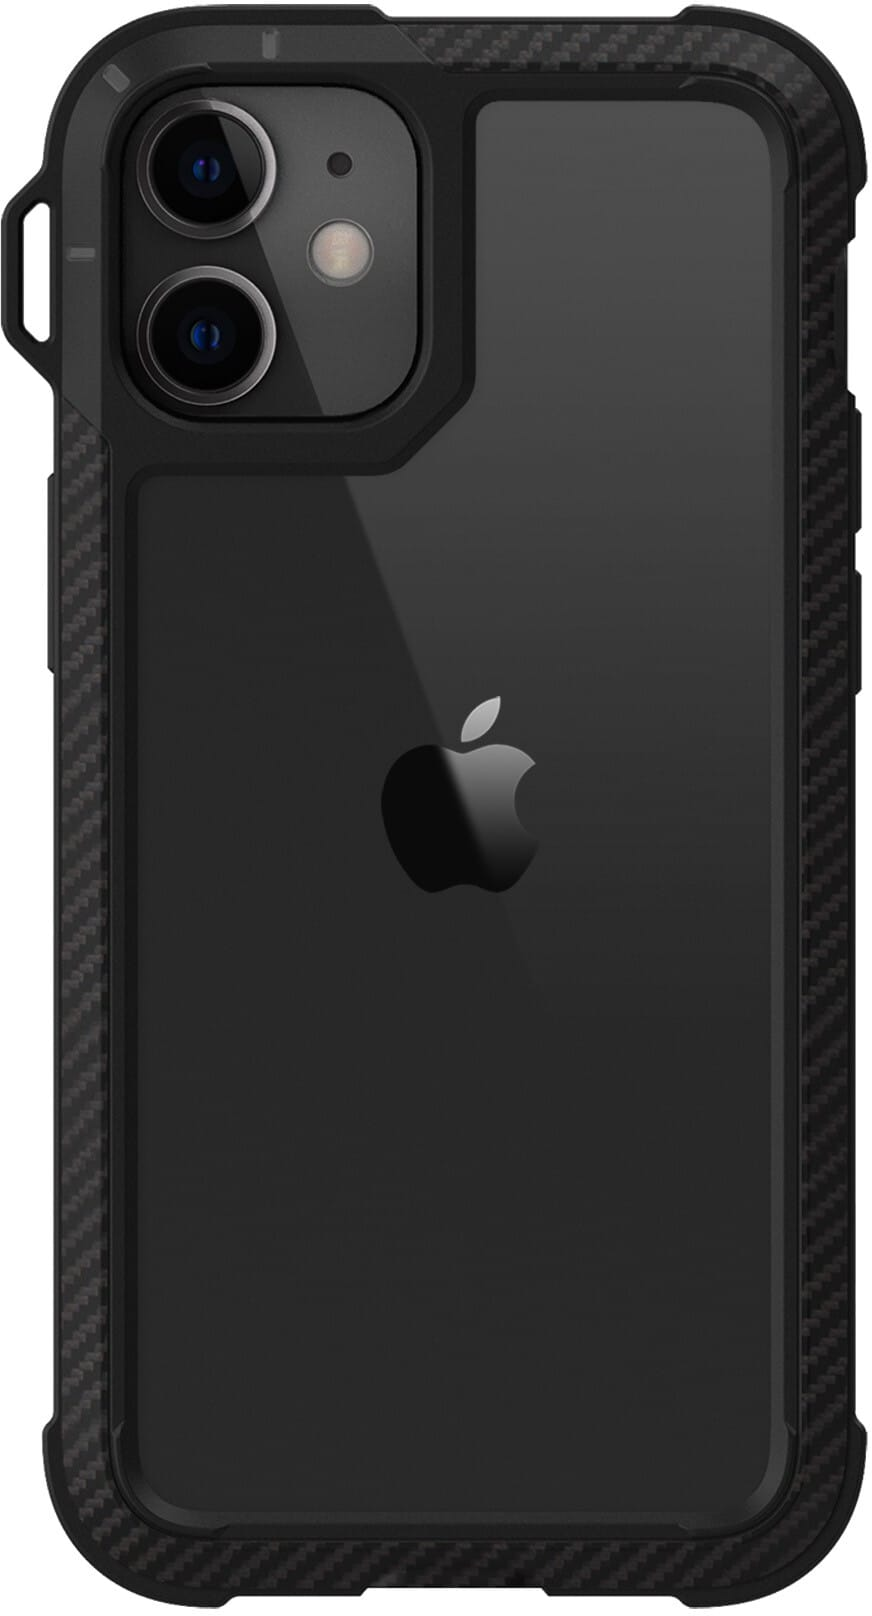 SwitchEasy Explorer Case (iPhone 12 mini)